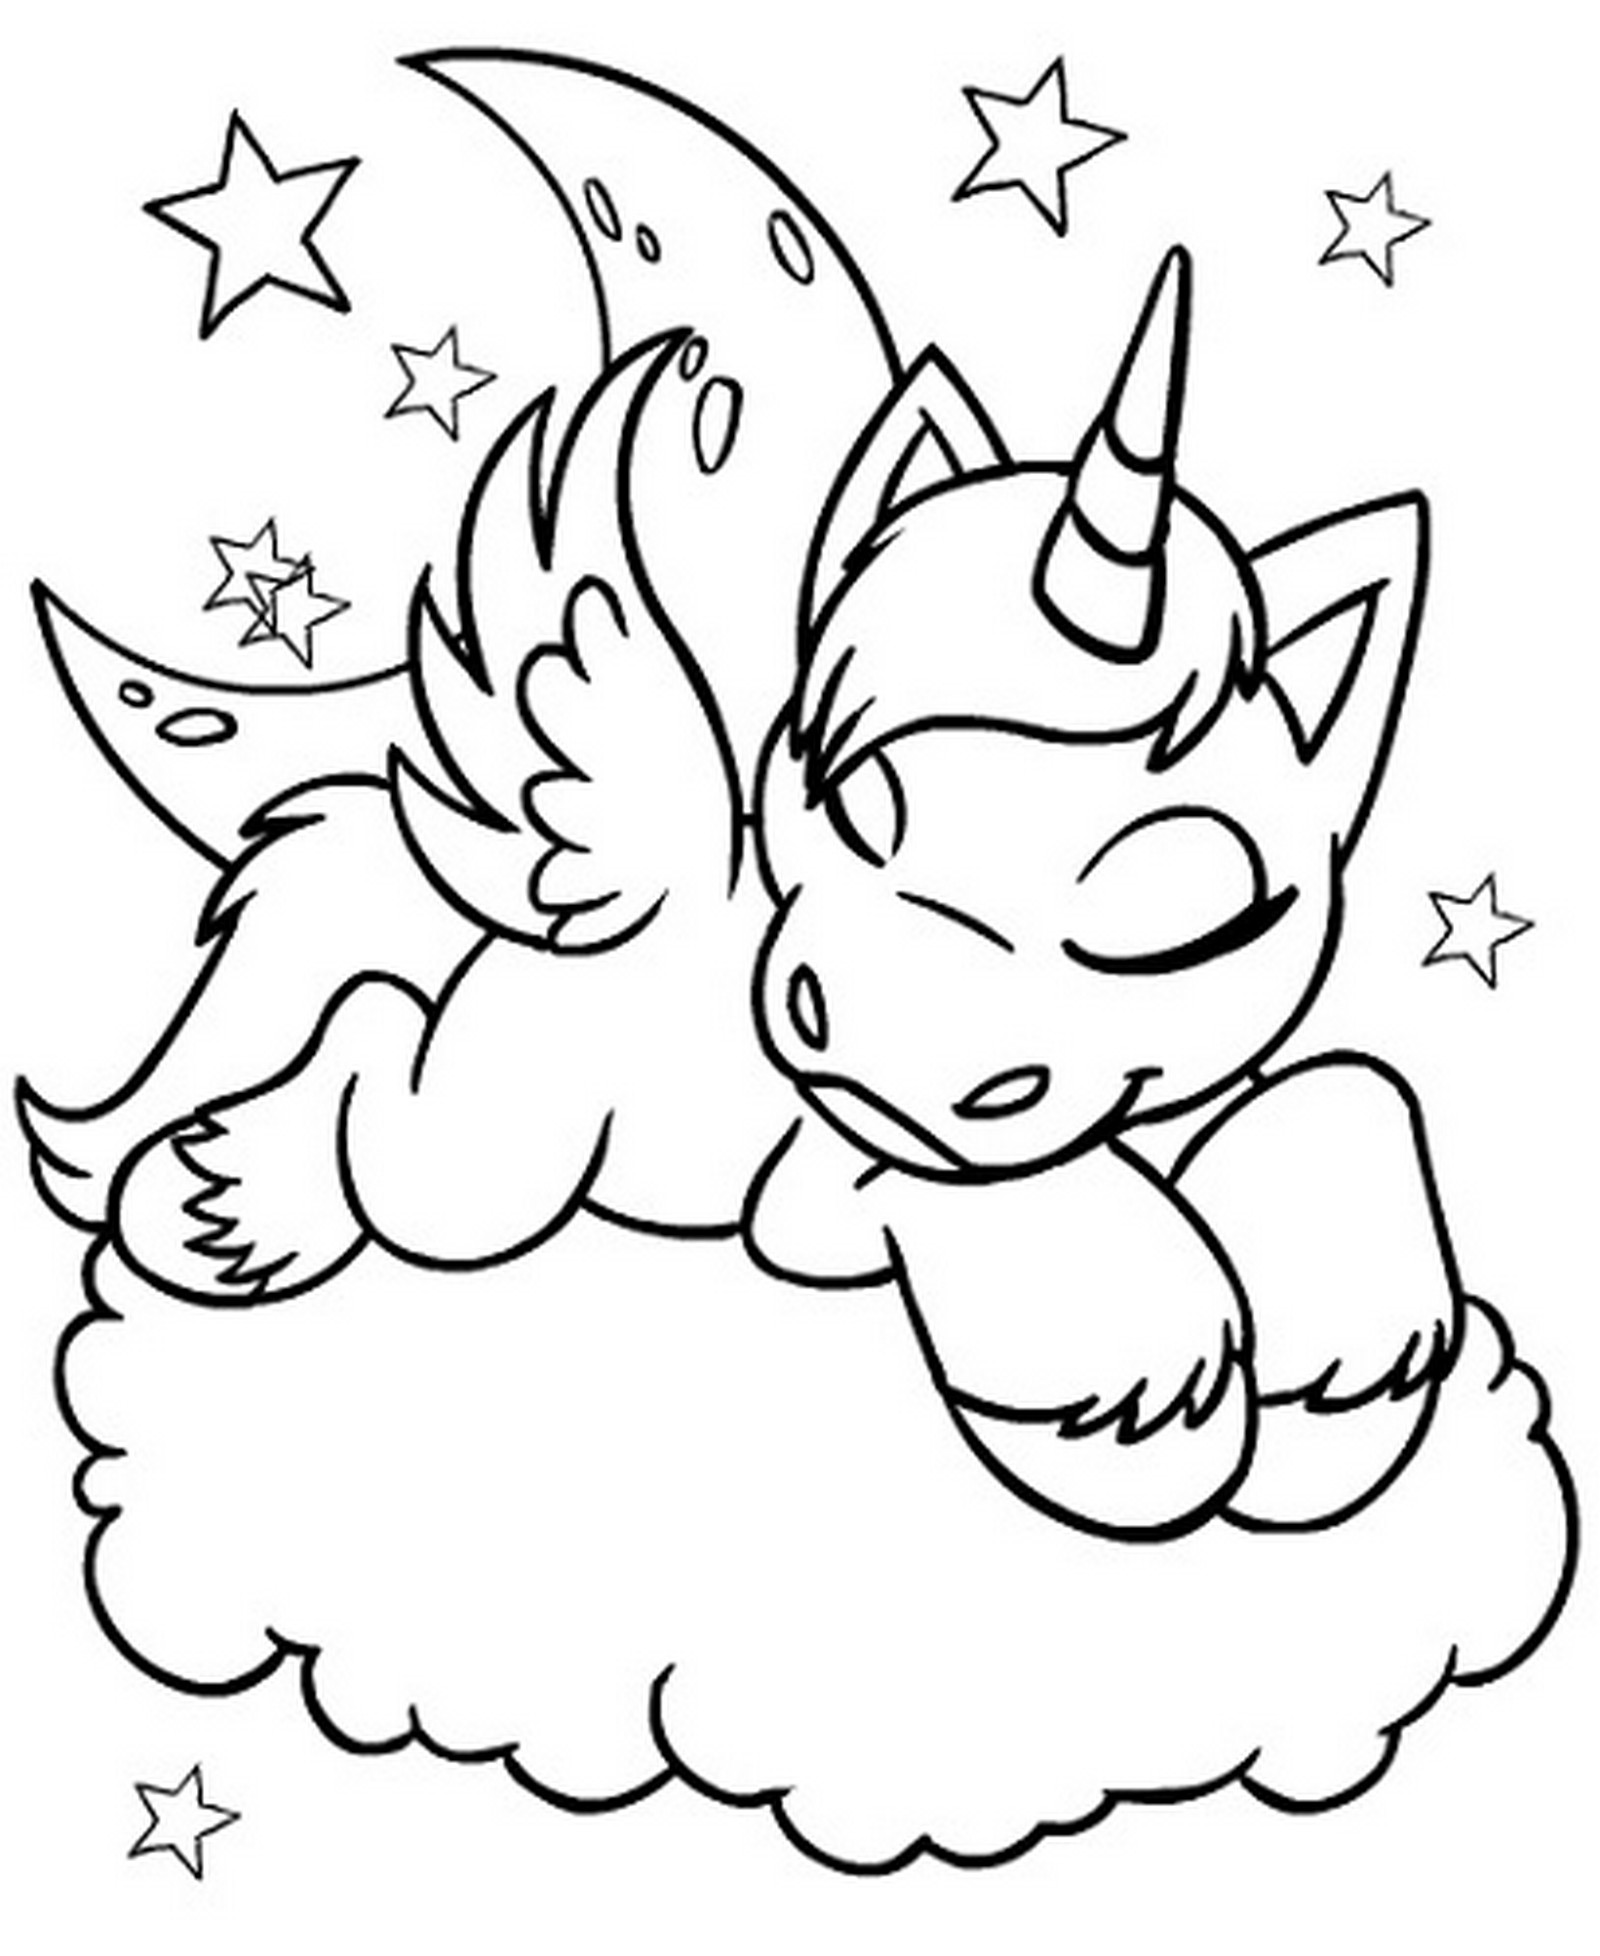 coloring page of unicorn unicorn coloring pages to download and print for free unicorn of coloring page